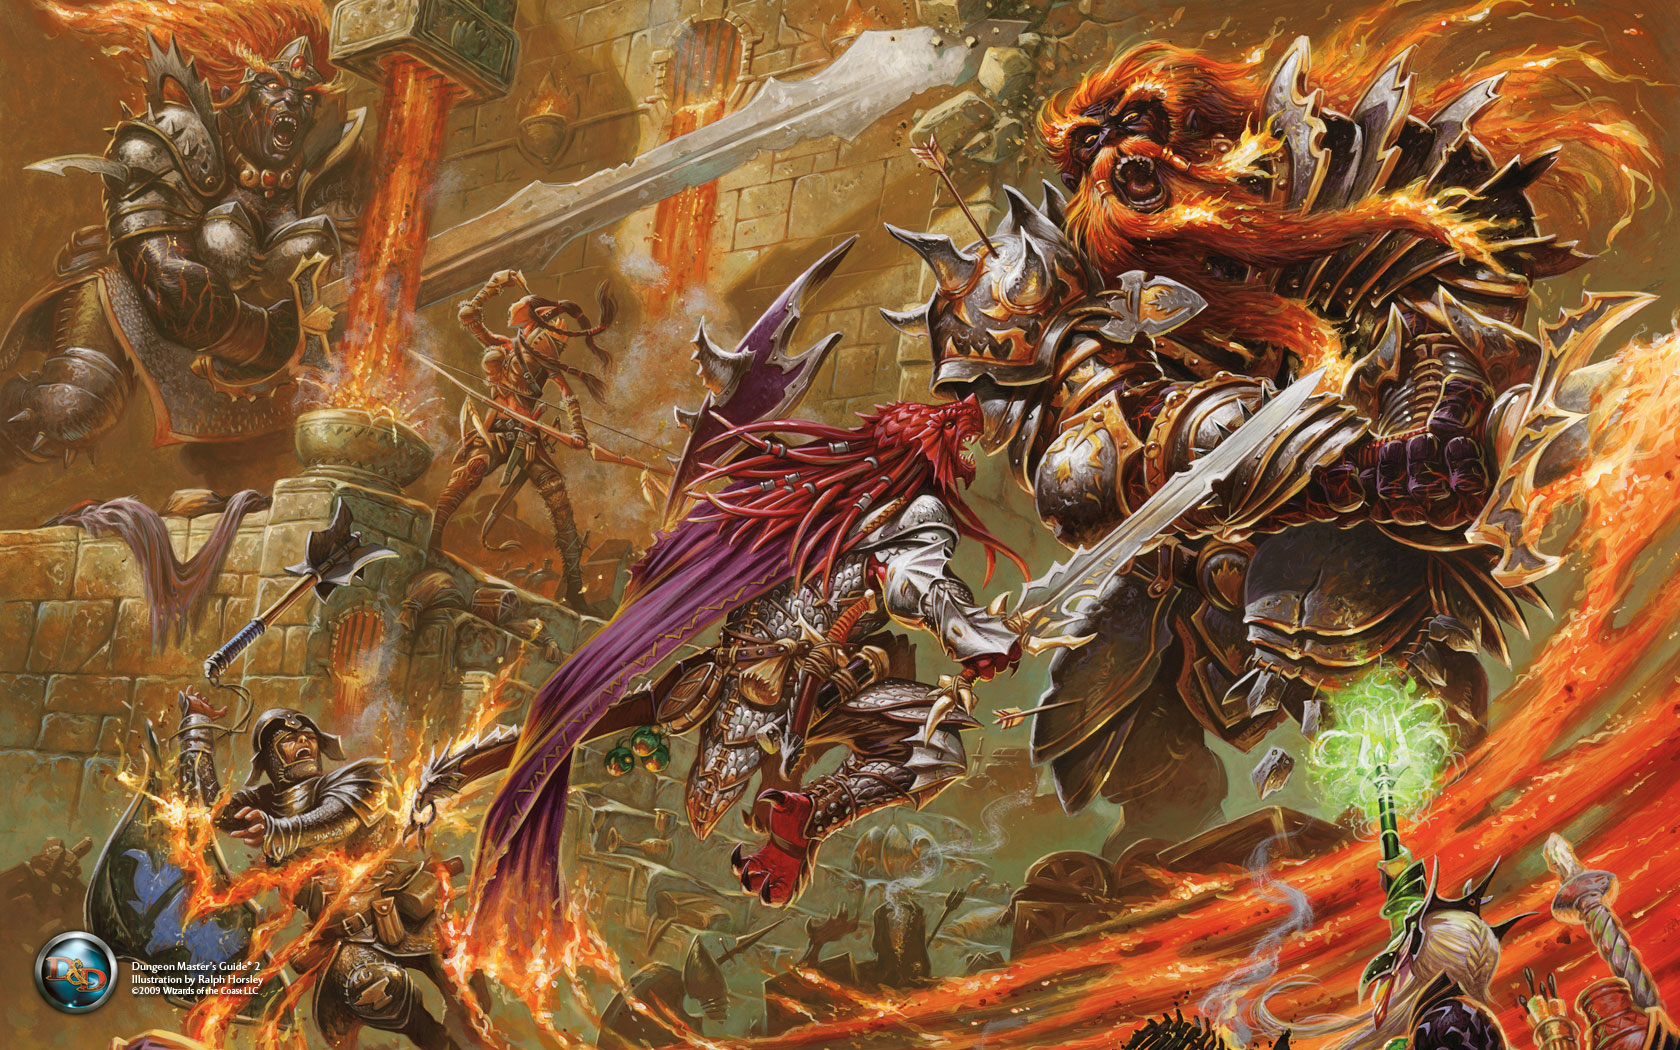 Download the Dungeons and Dragons Wallpaper Dungeons and Dragons